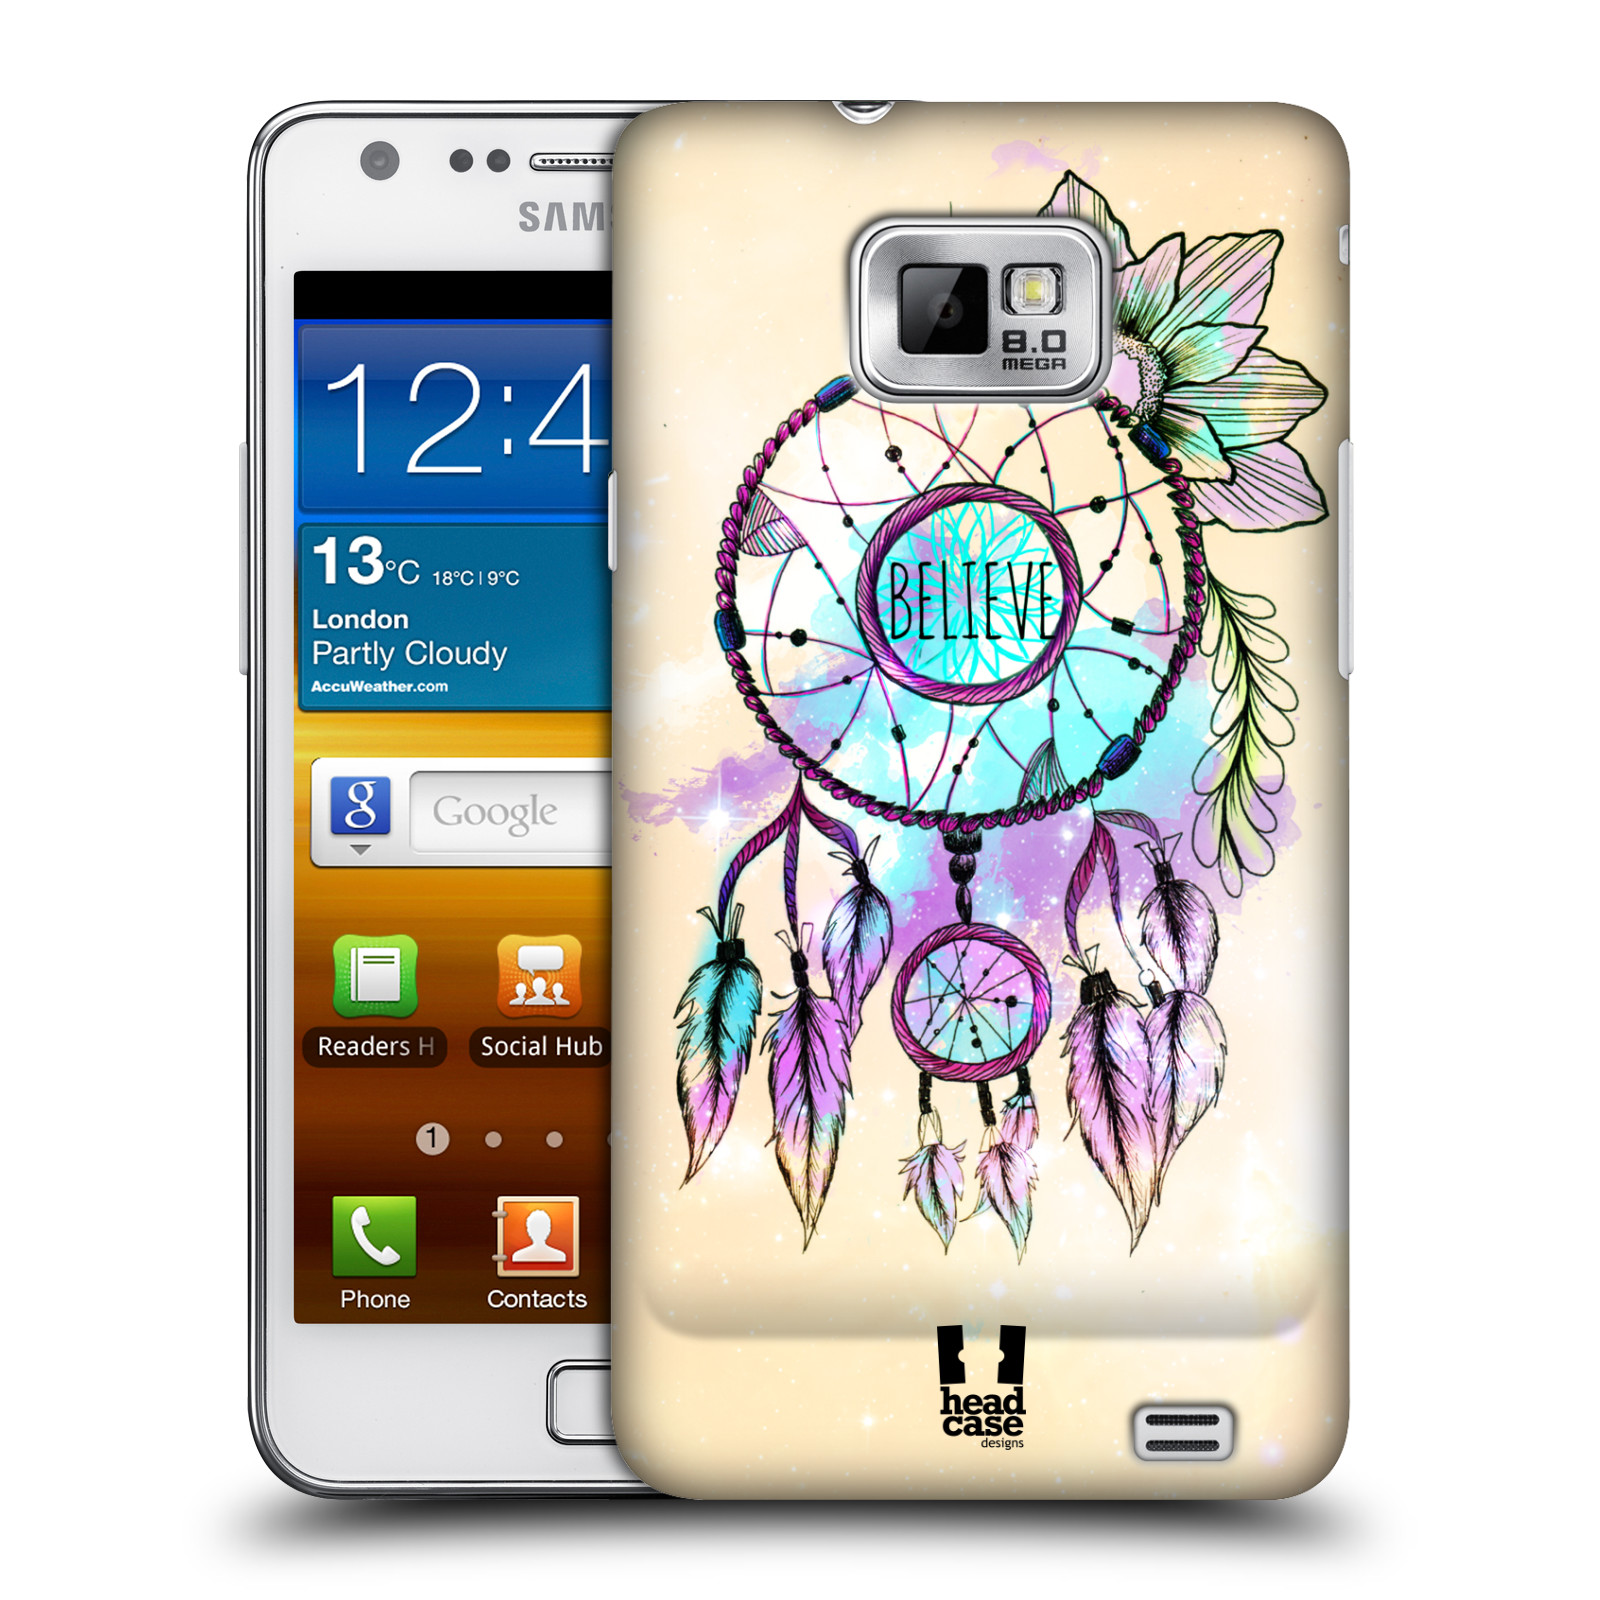 HEAD CASE DESIGNS TREND MIX CASE COVER FOR SAMSUNG GALAXY S2 II I9100